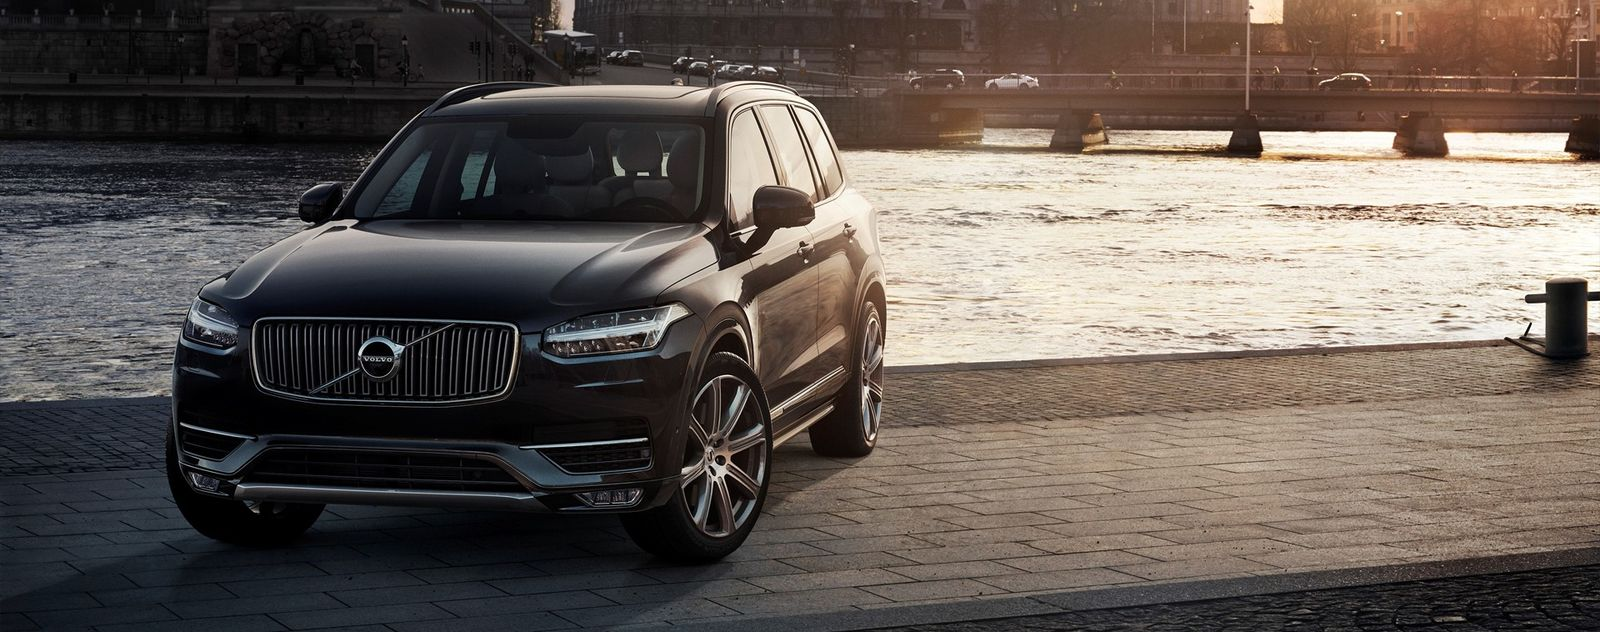 Volvo xc90 turning radius